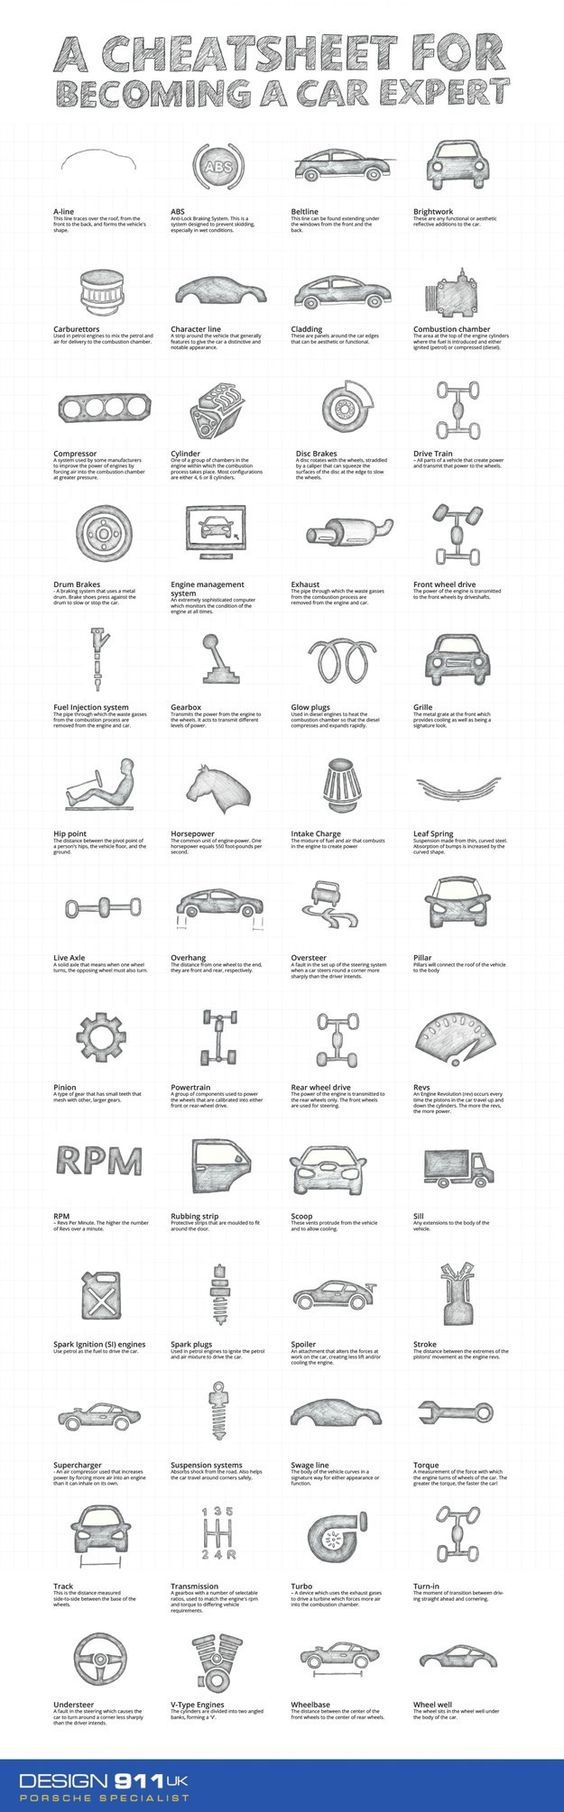 218 best vehicle tips images on pinterest households car stuff what all those car terms mean fandeluxe Images